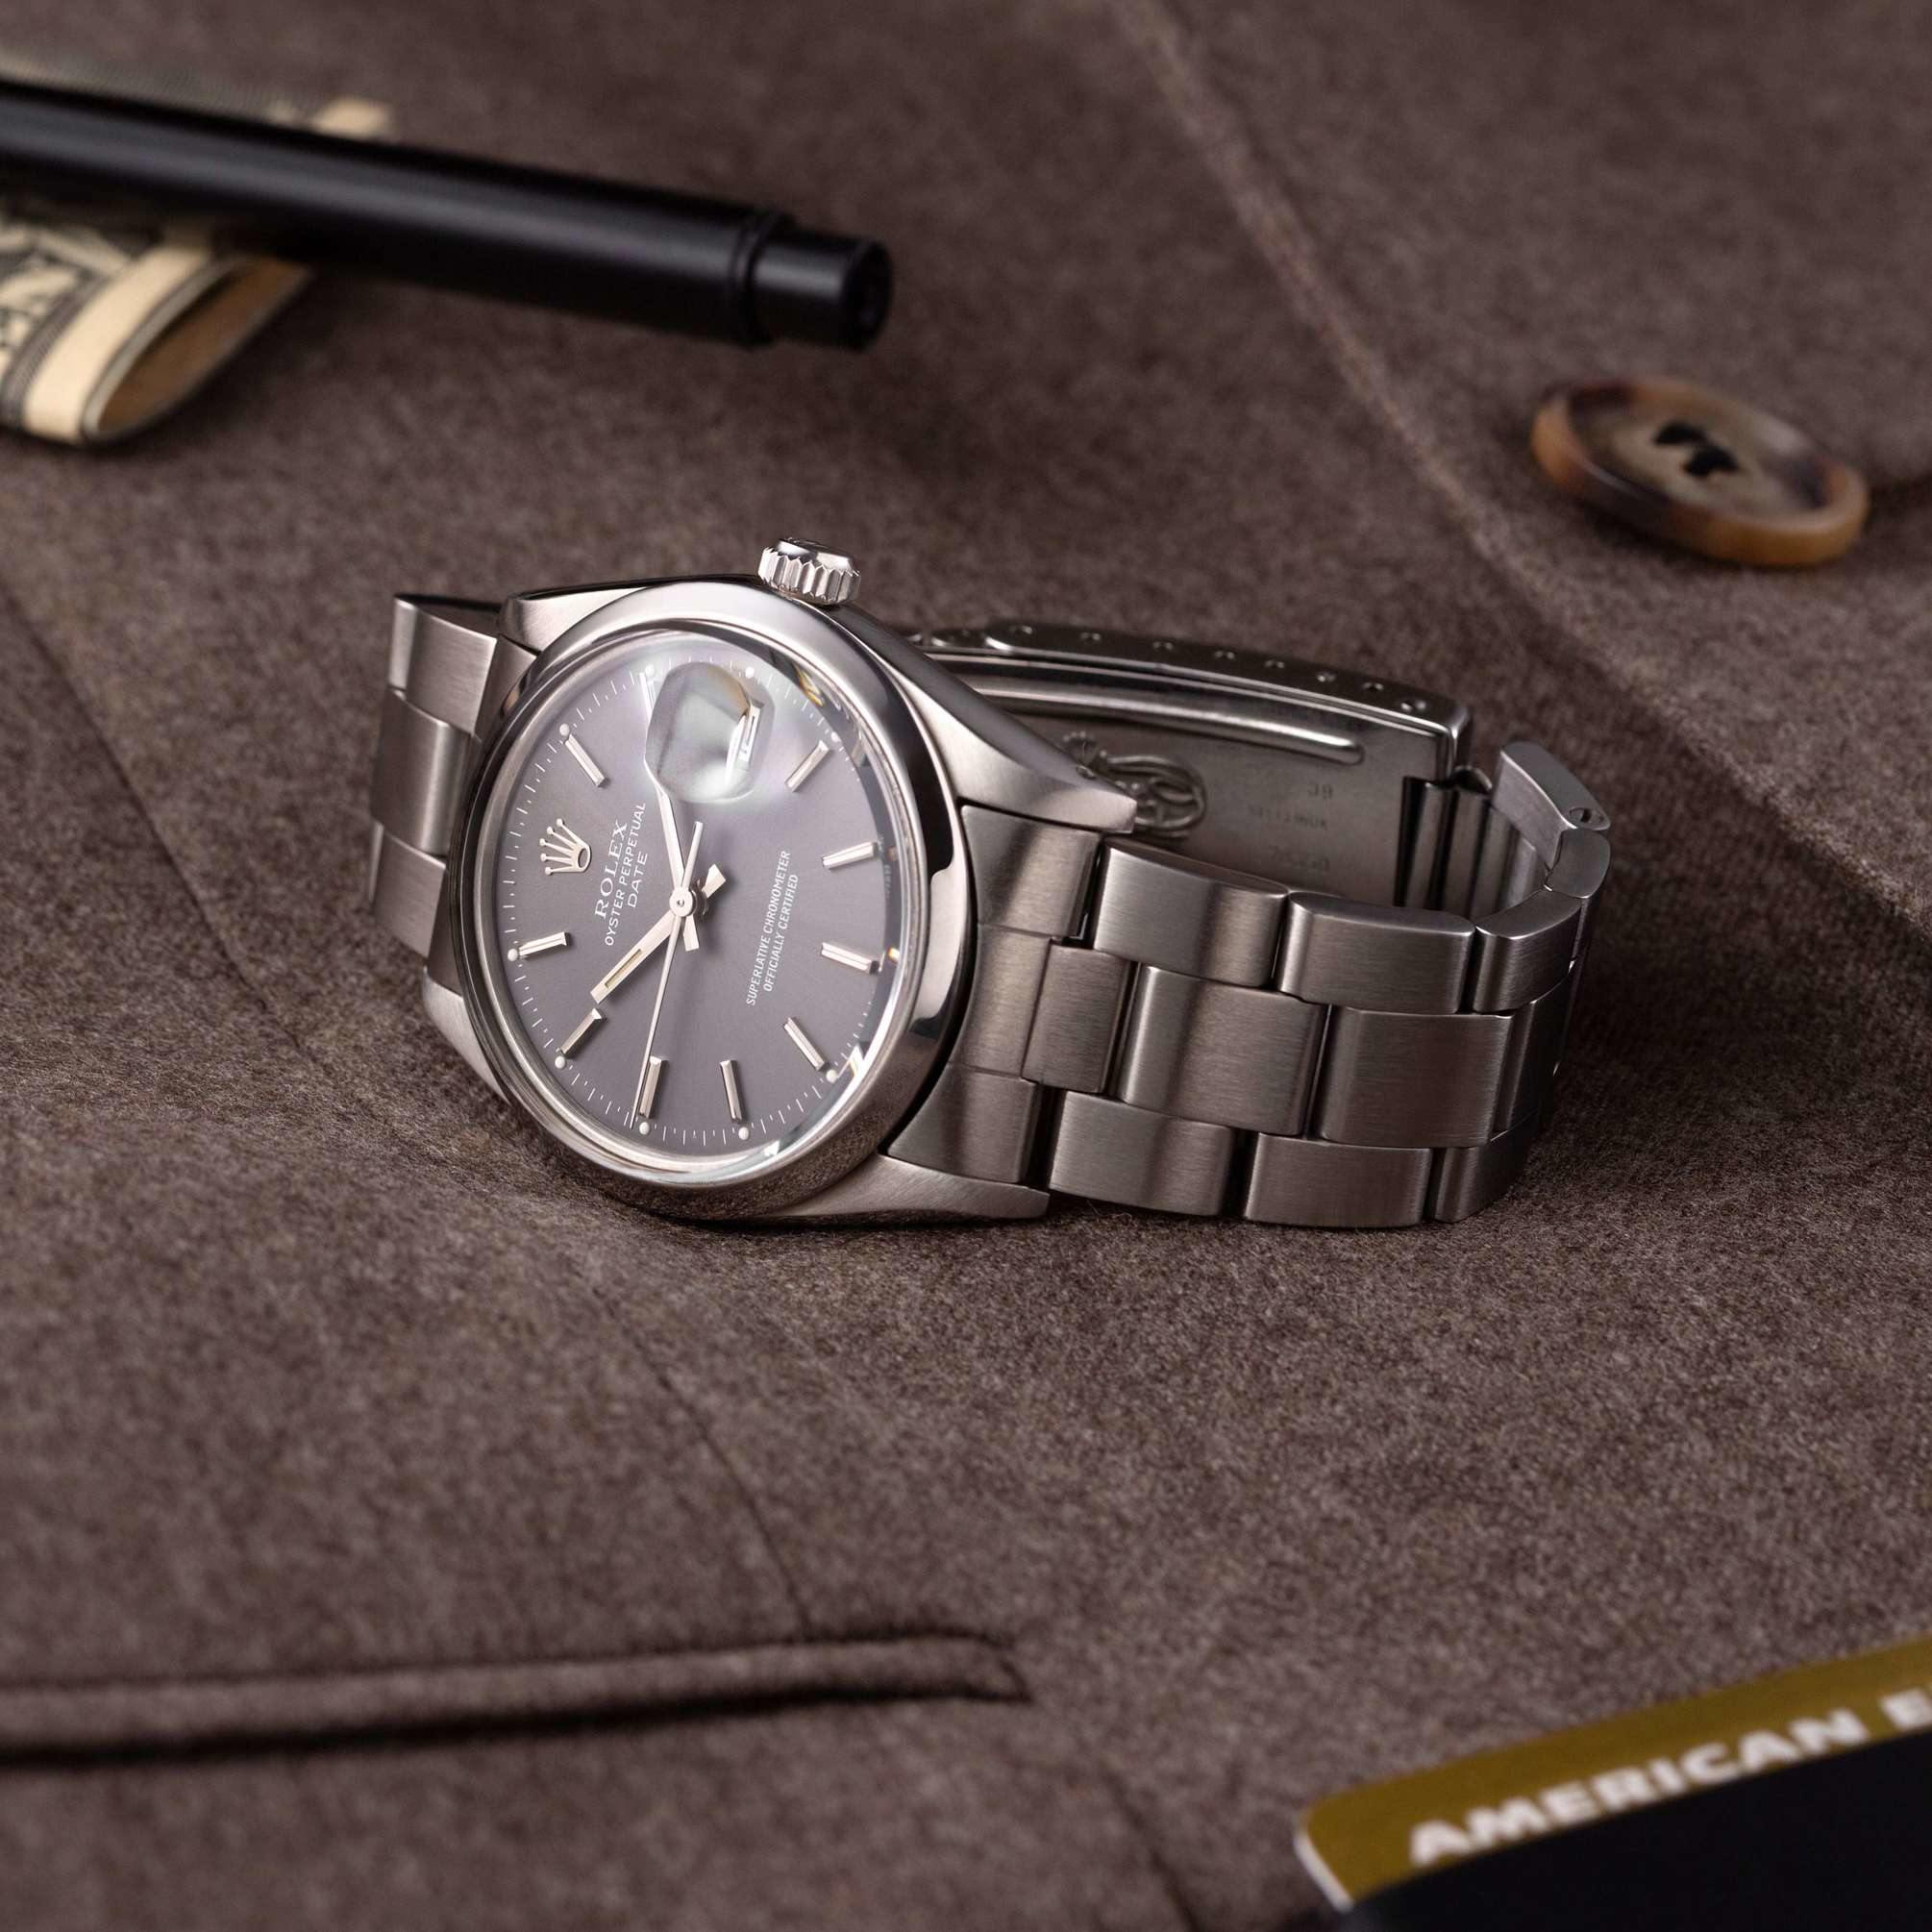 Rolex Oyster Perpetual Date 15000 grey dial - The Modest Man